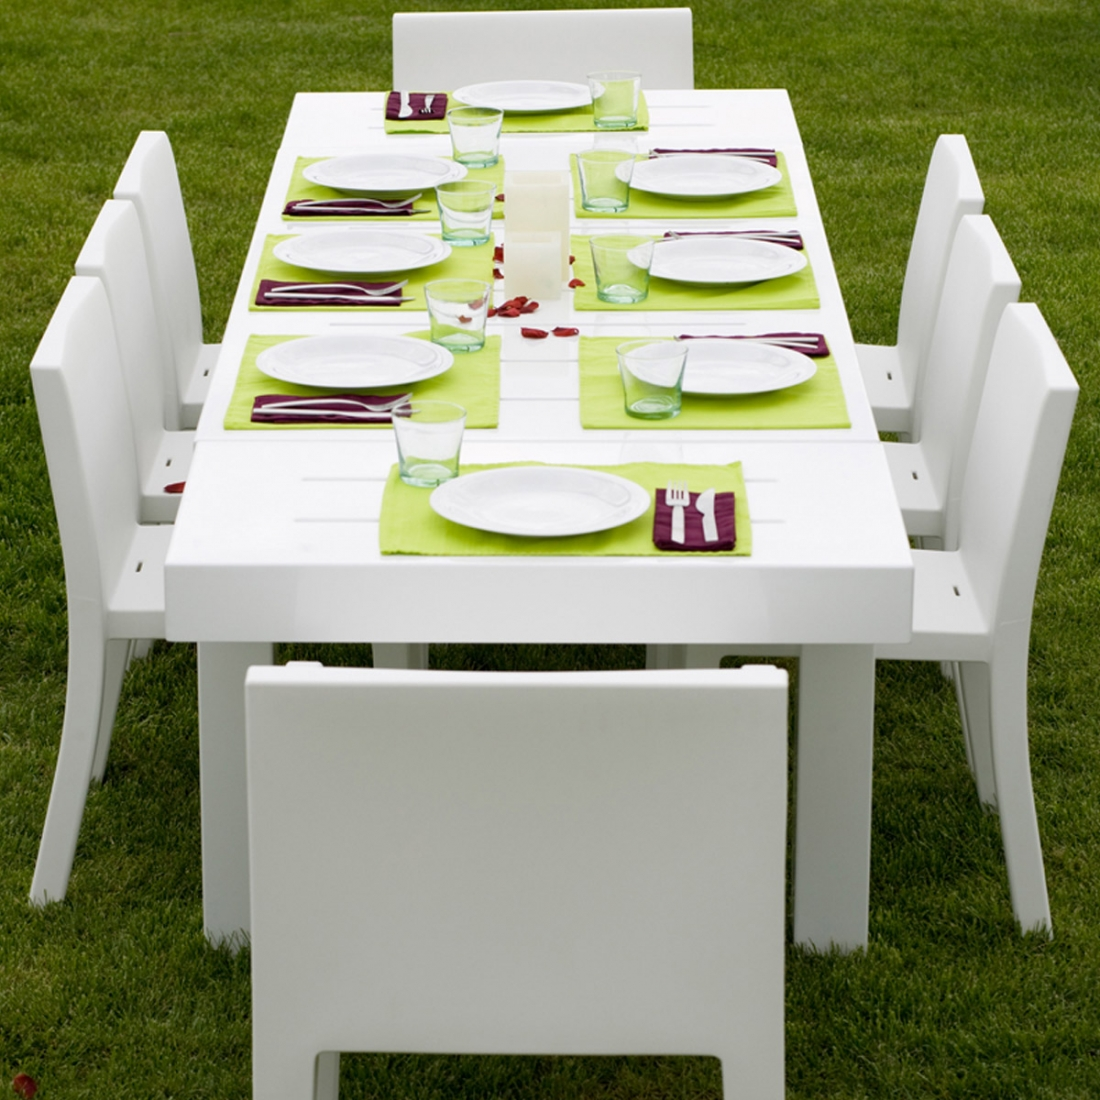 Table de jardin design 12 personnes jut par vondom for Table jardin design